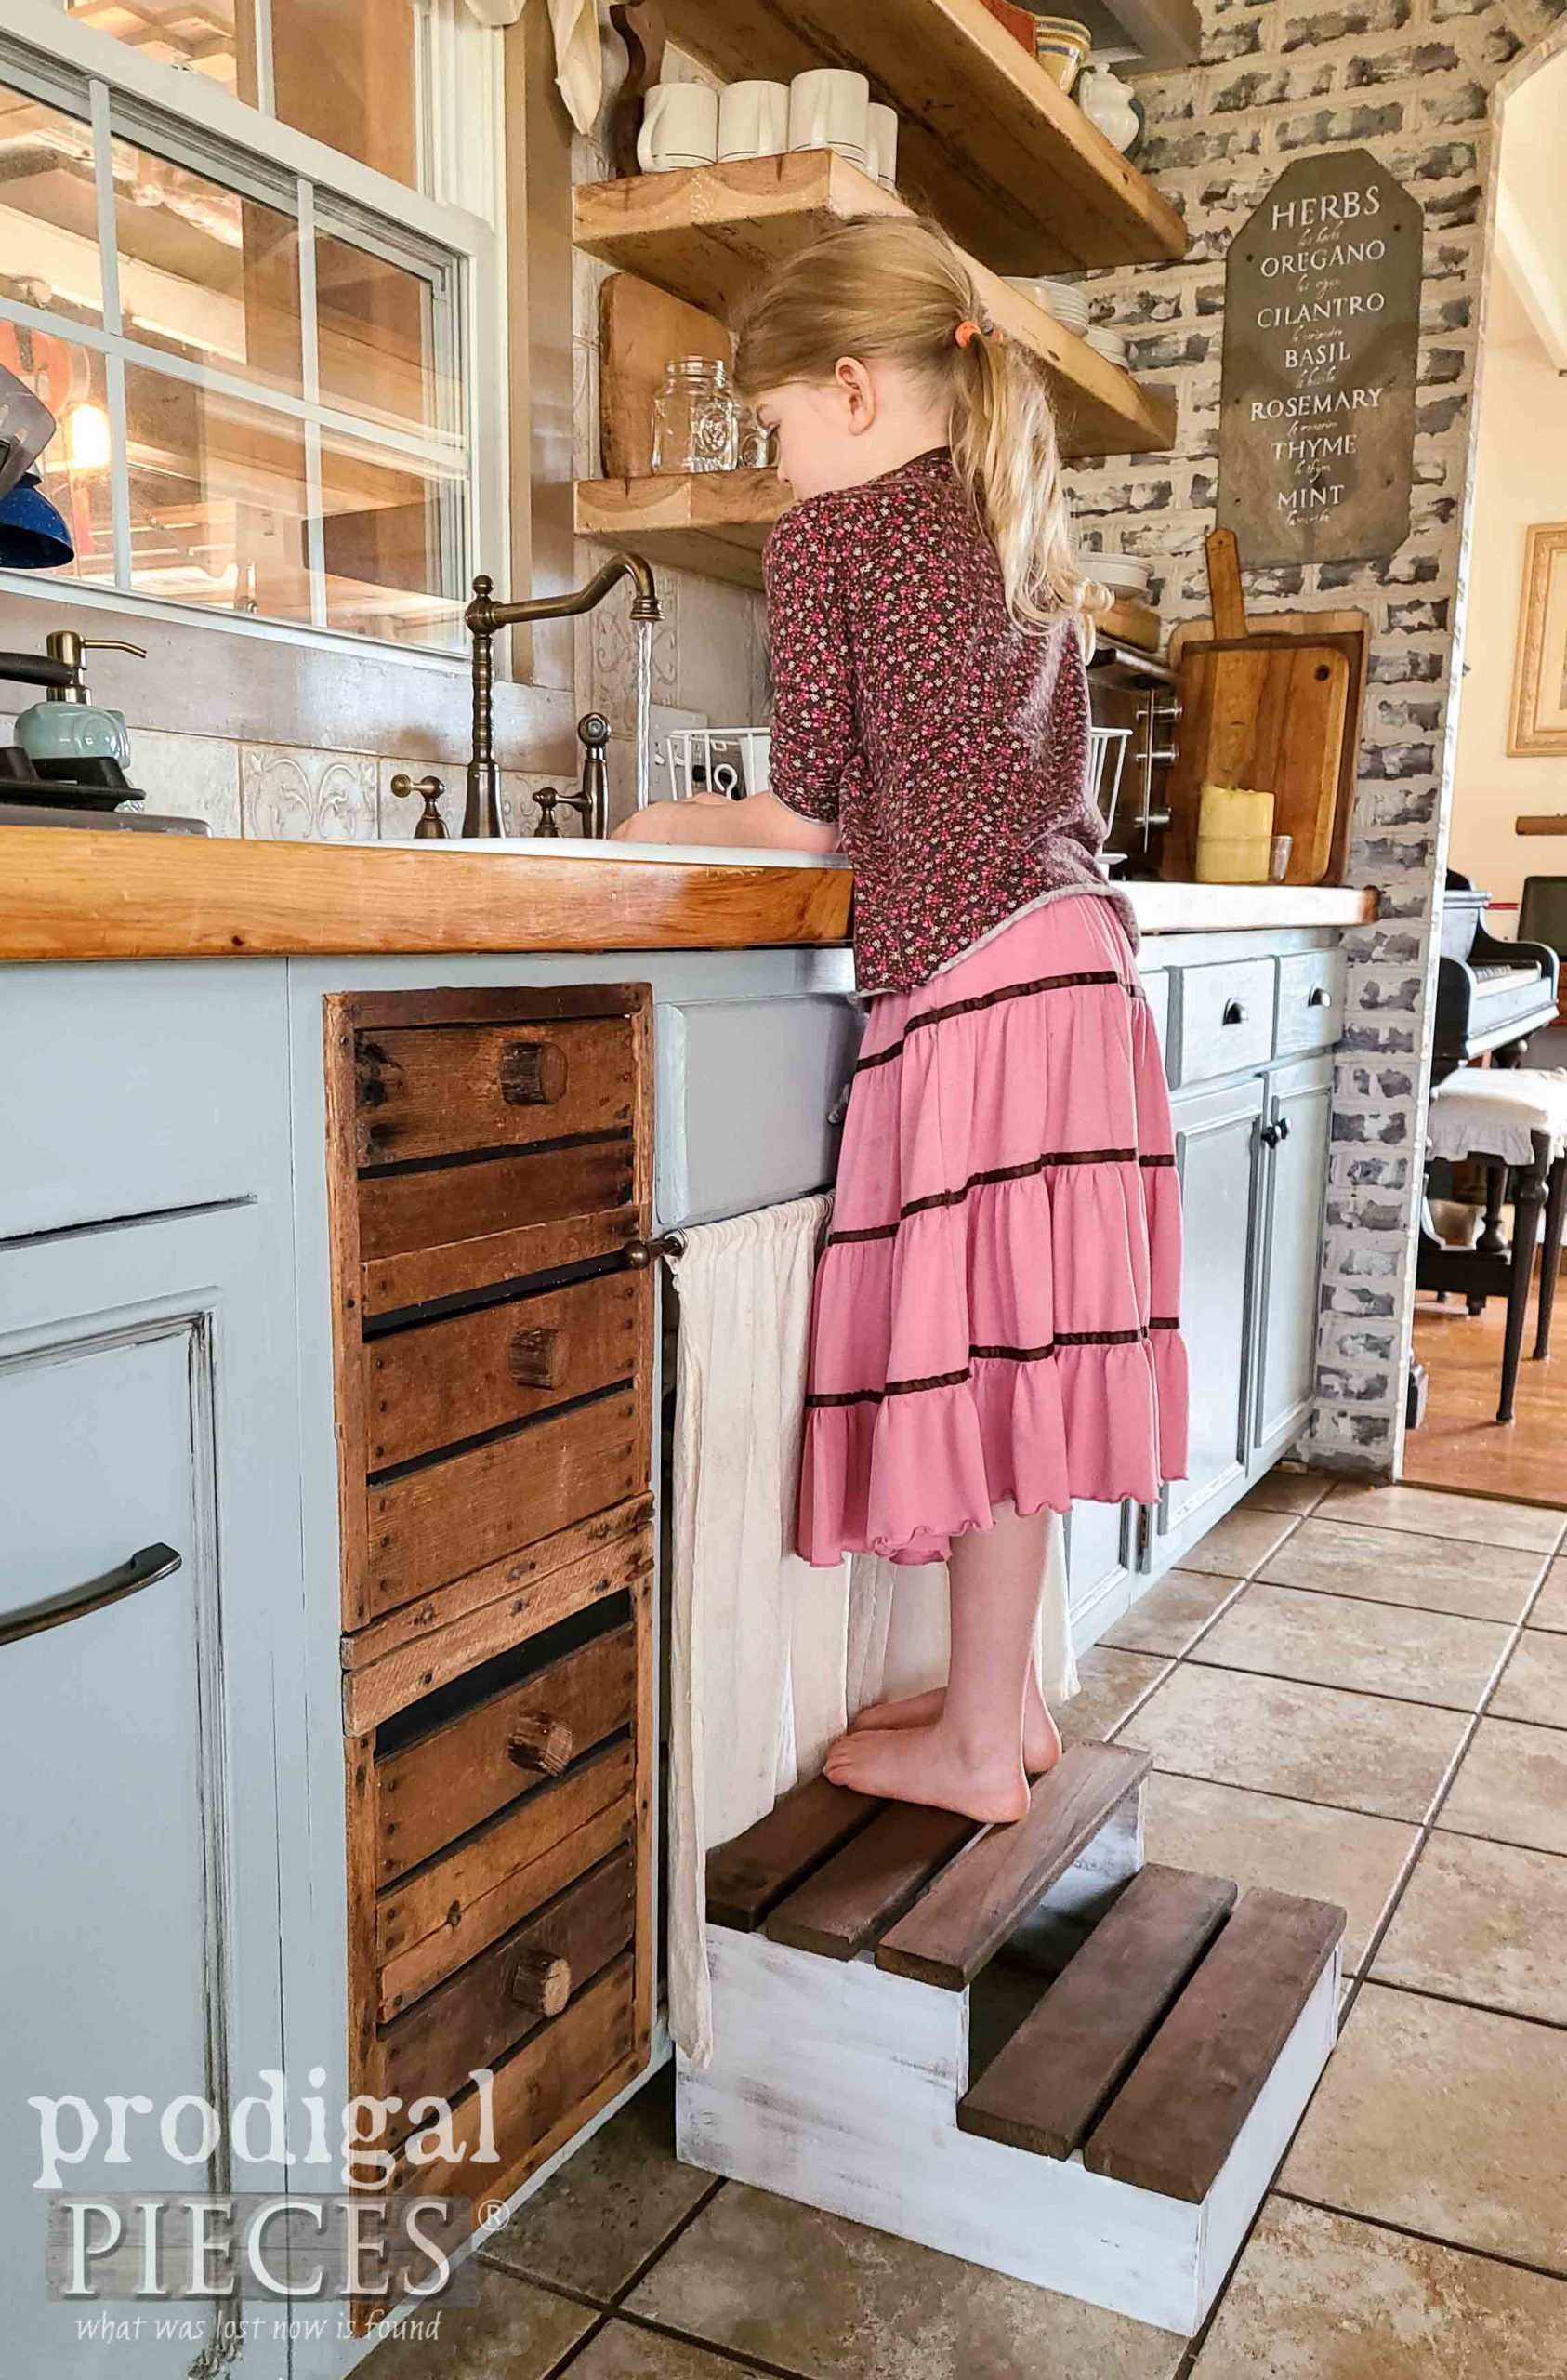 Farmhouse Kitchen DIY Wood Slat Stool from Upcycled Quilt Rack by Larissa of Prodigal Pieces | prodigalpieces.com #prodigalpieces #farmhouse #woodworking #home #homedecor